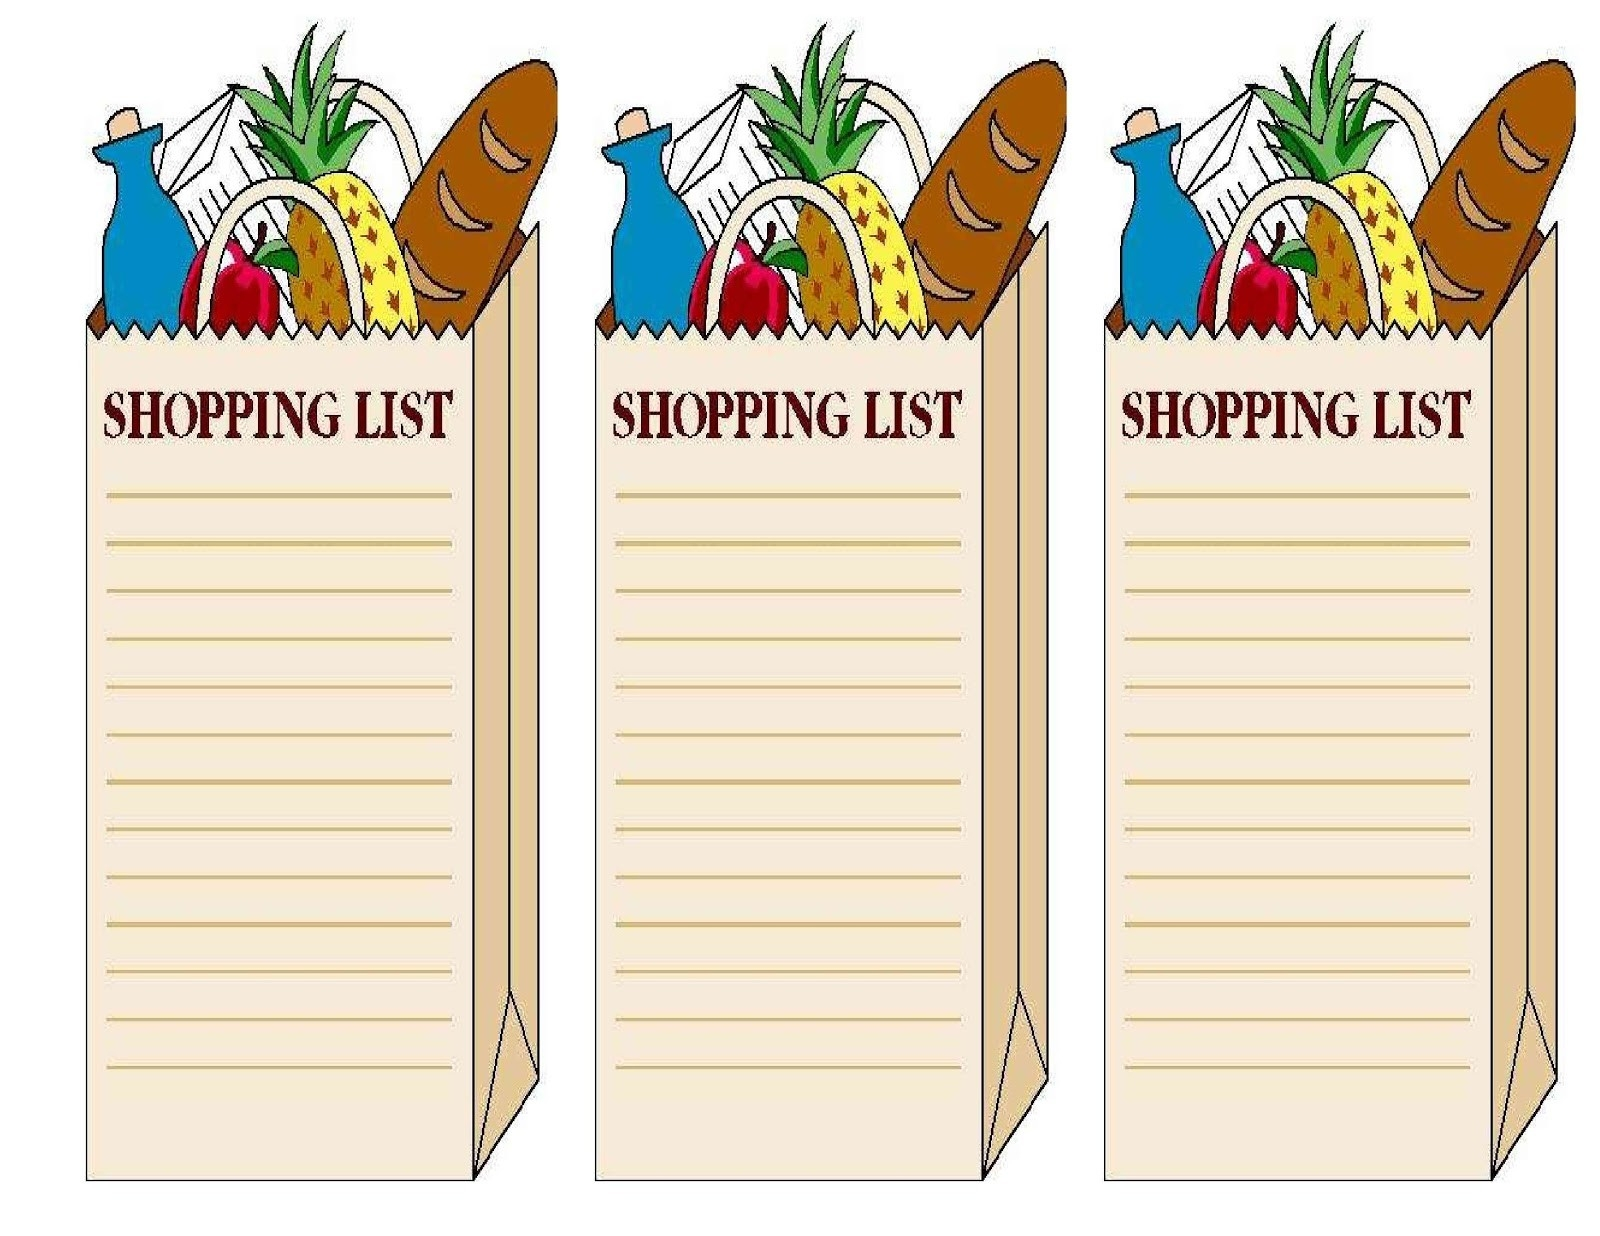 Cliparts Shopping List | Free Download Clip Art | Free Clip Art within Shopping List Clipart 20308